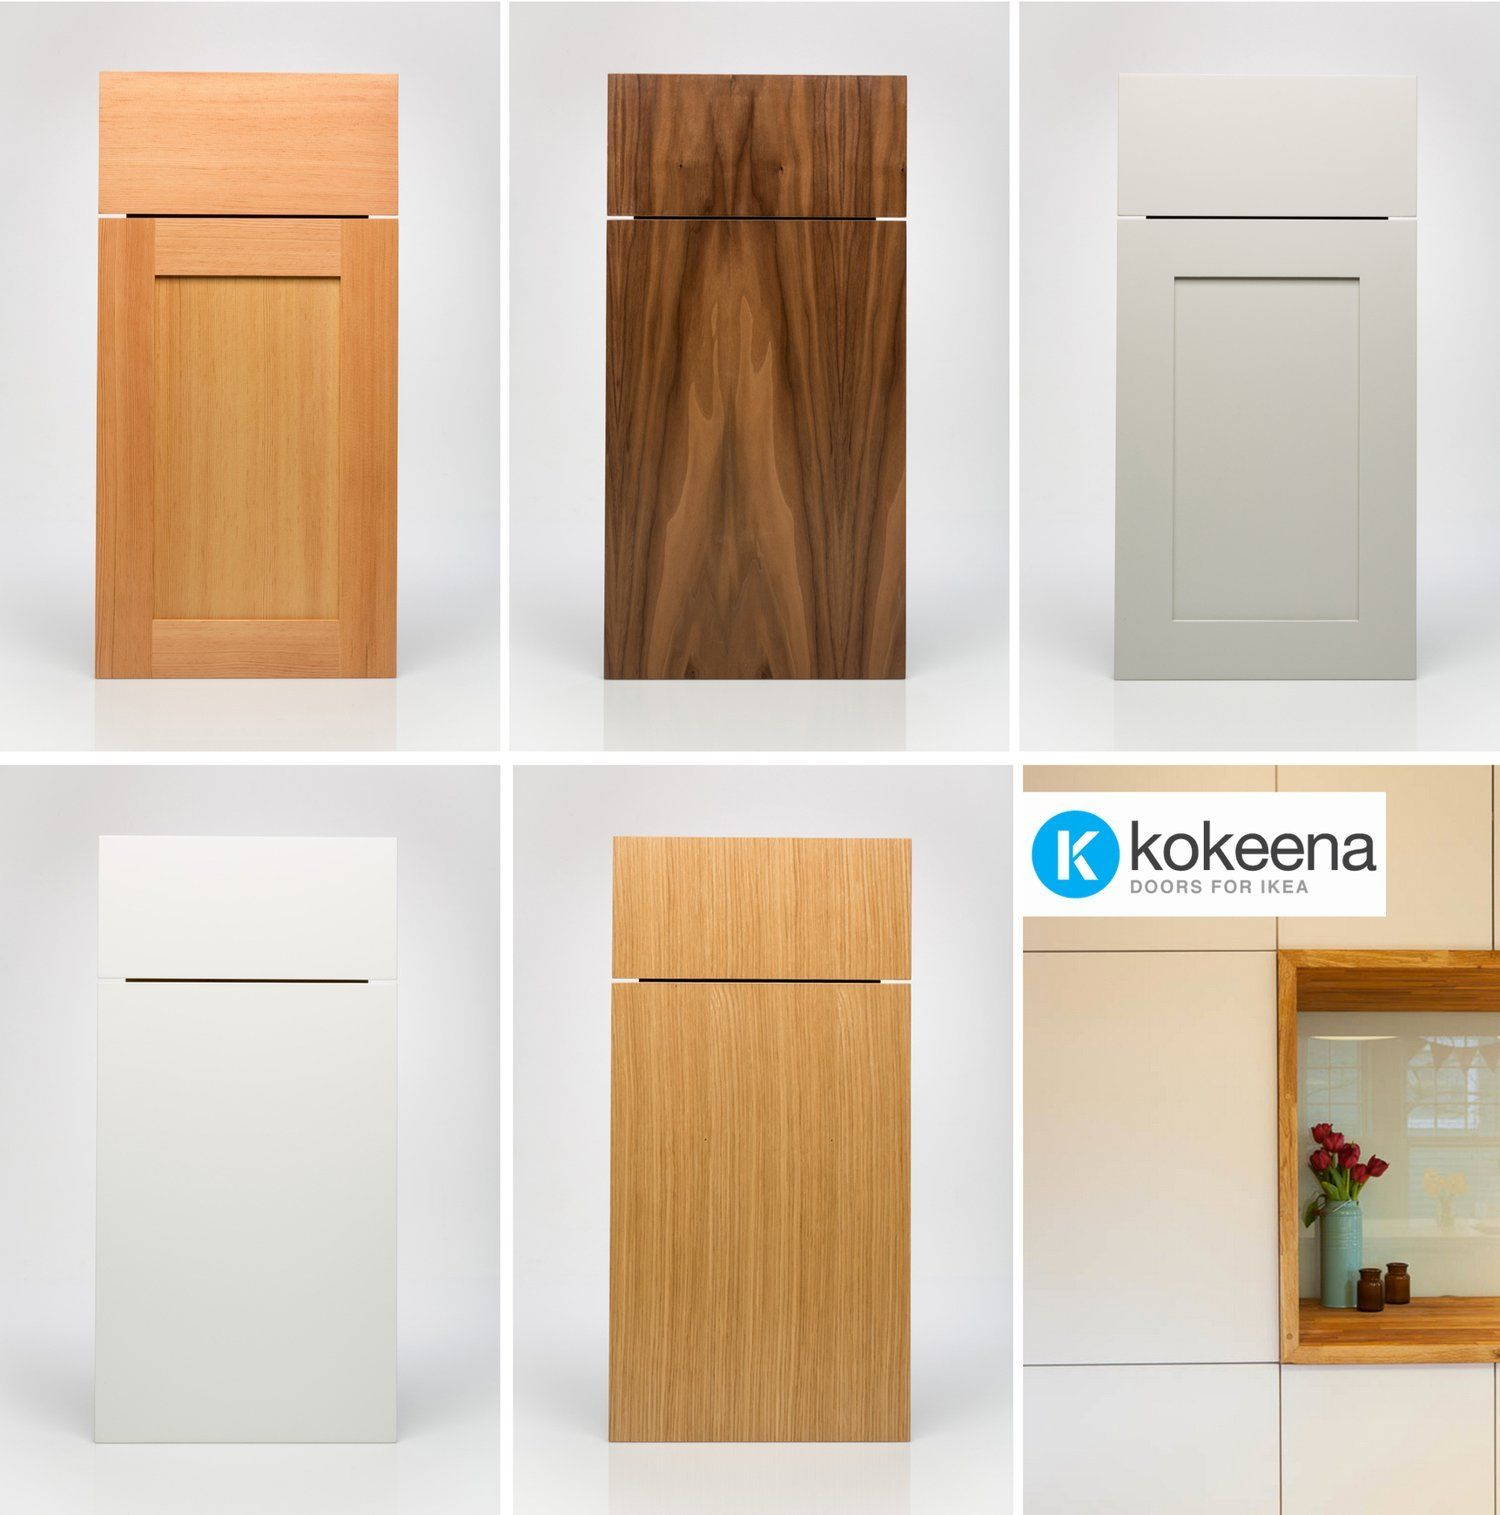 kokeena: real wood ready-made cabinet doors for ikea akurum